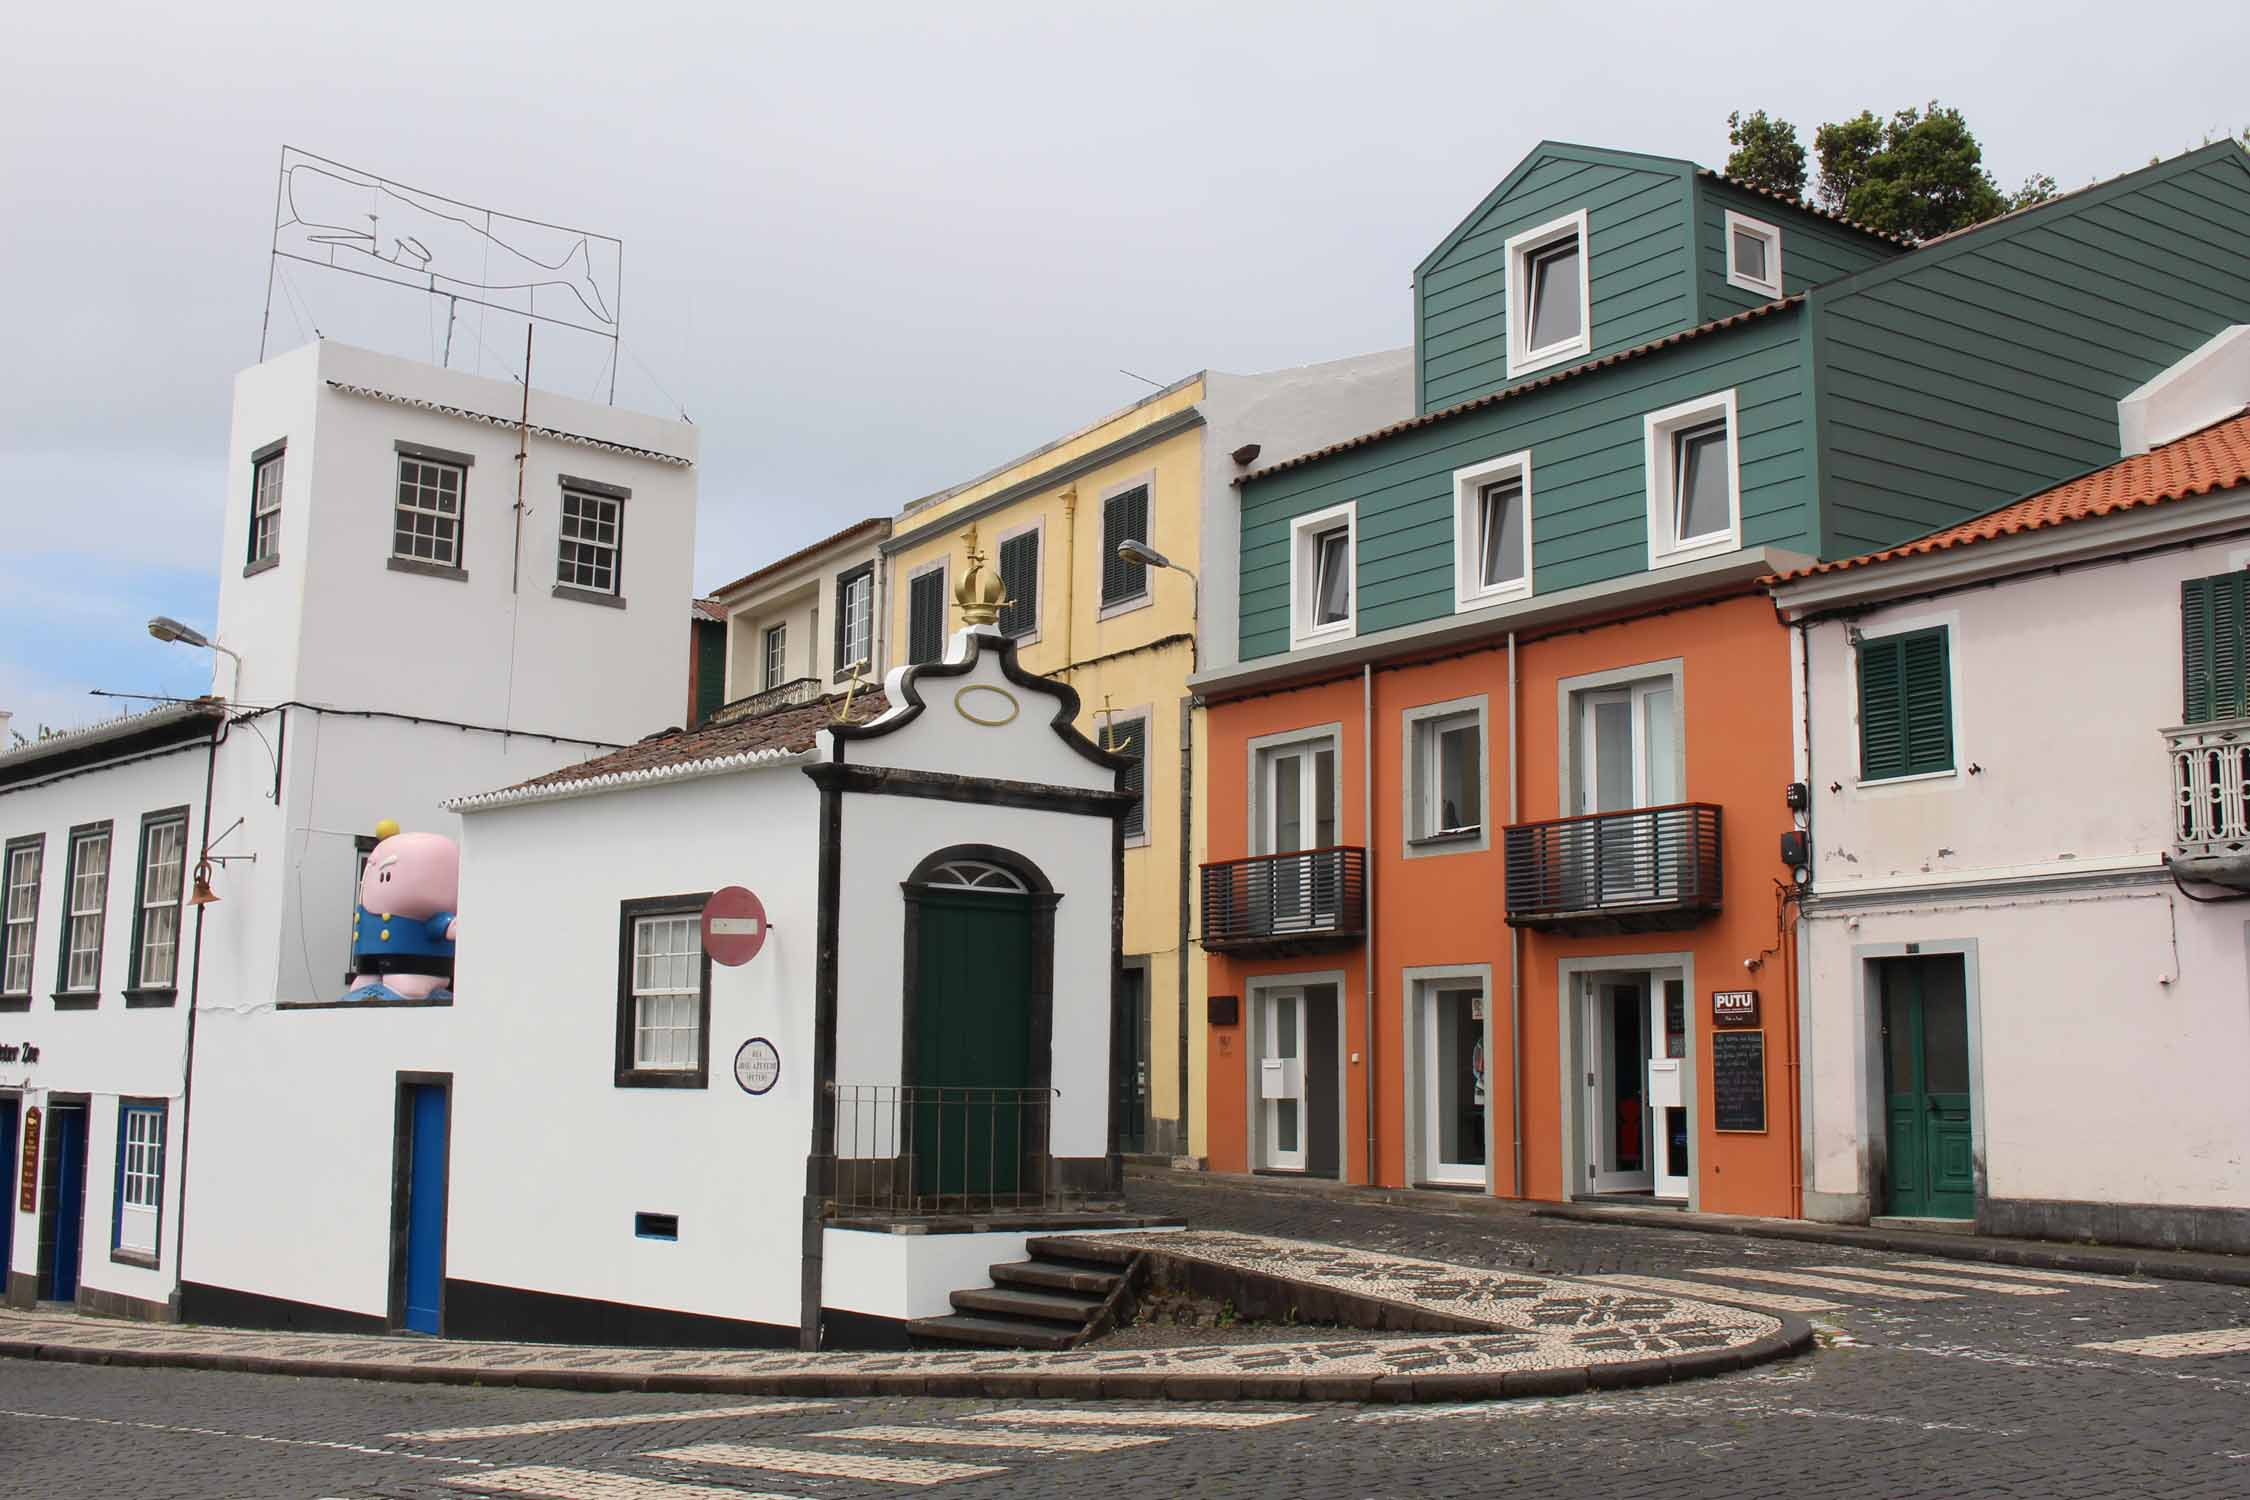 Coloured houses in Horta, Faial Island, Azores